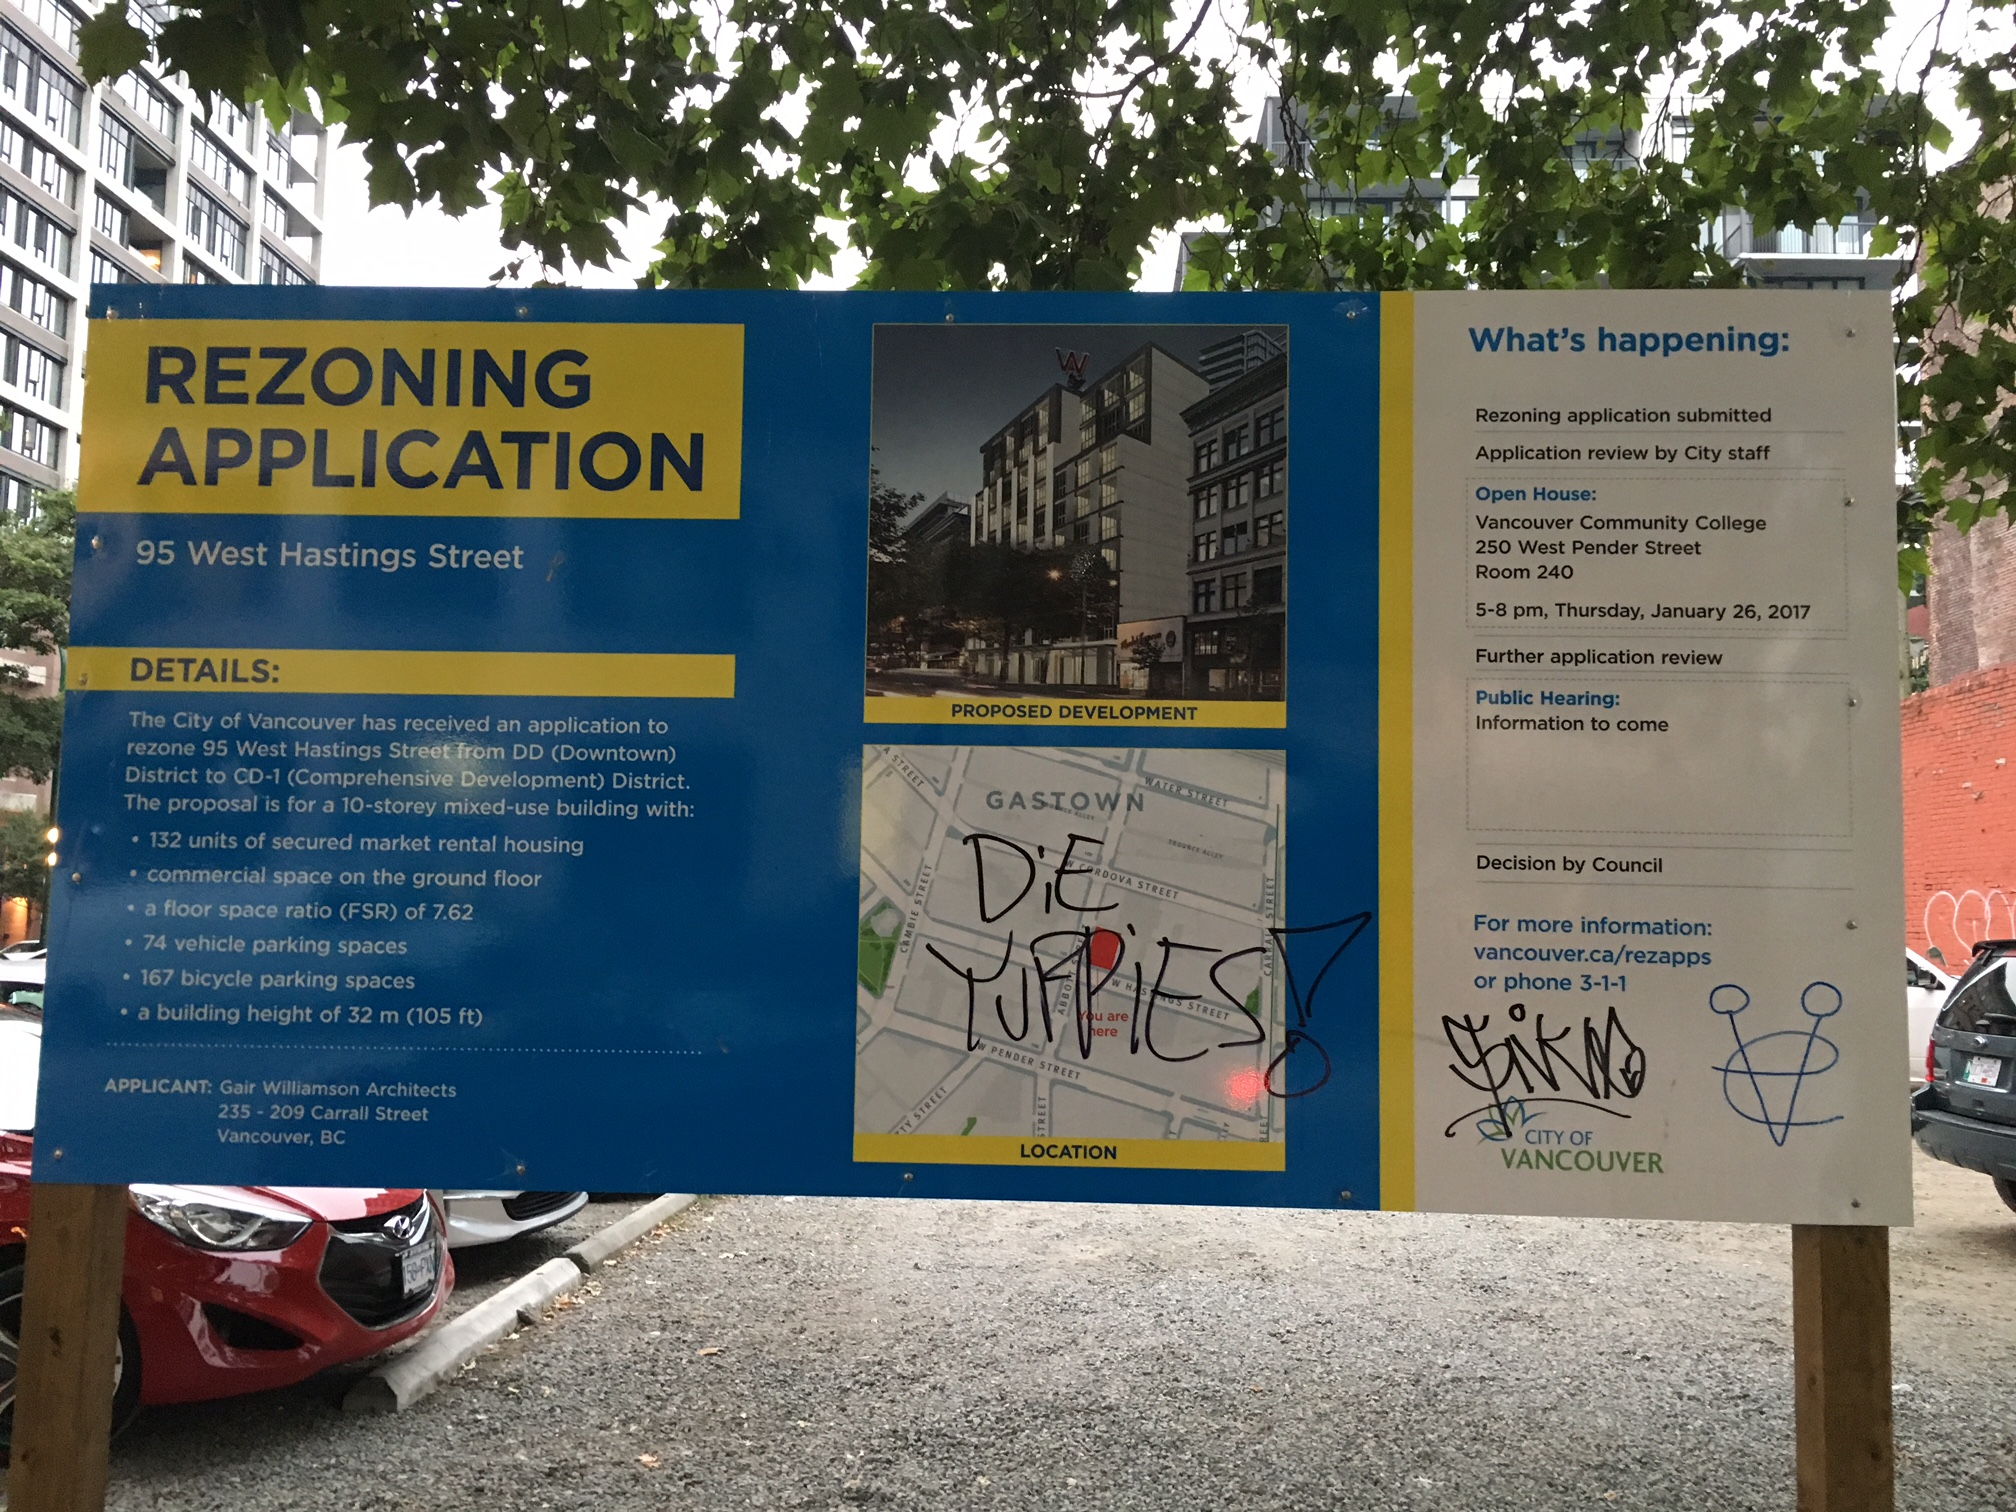 Rezoning Application - 95 West Hastings Street